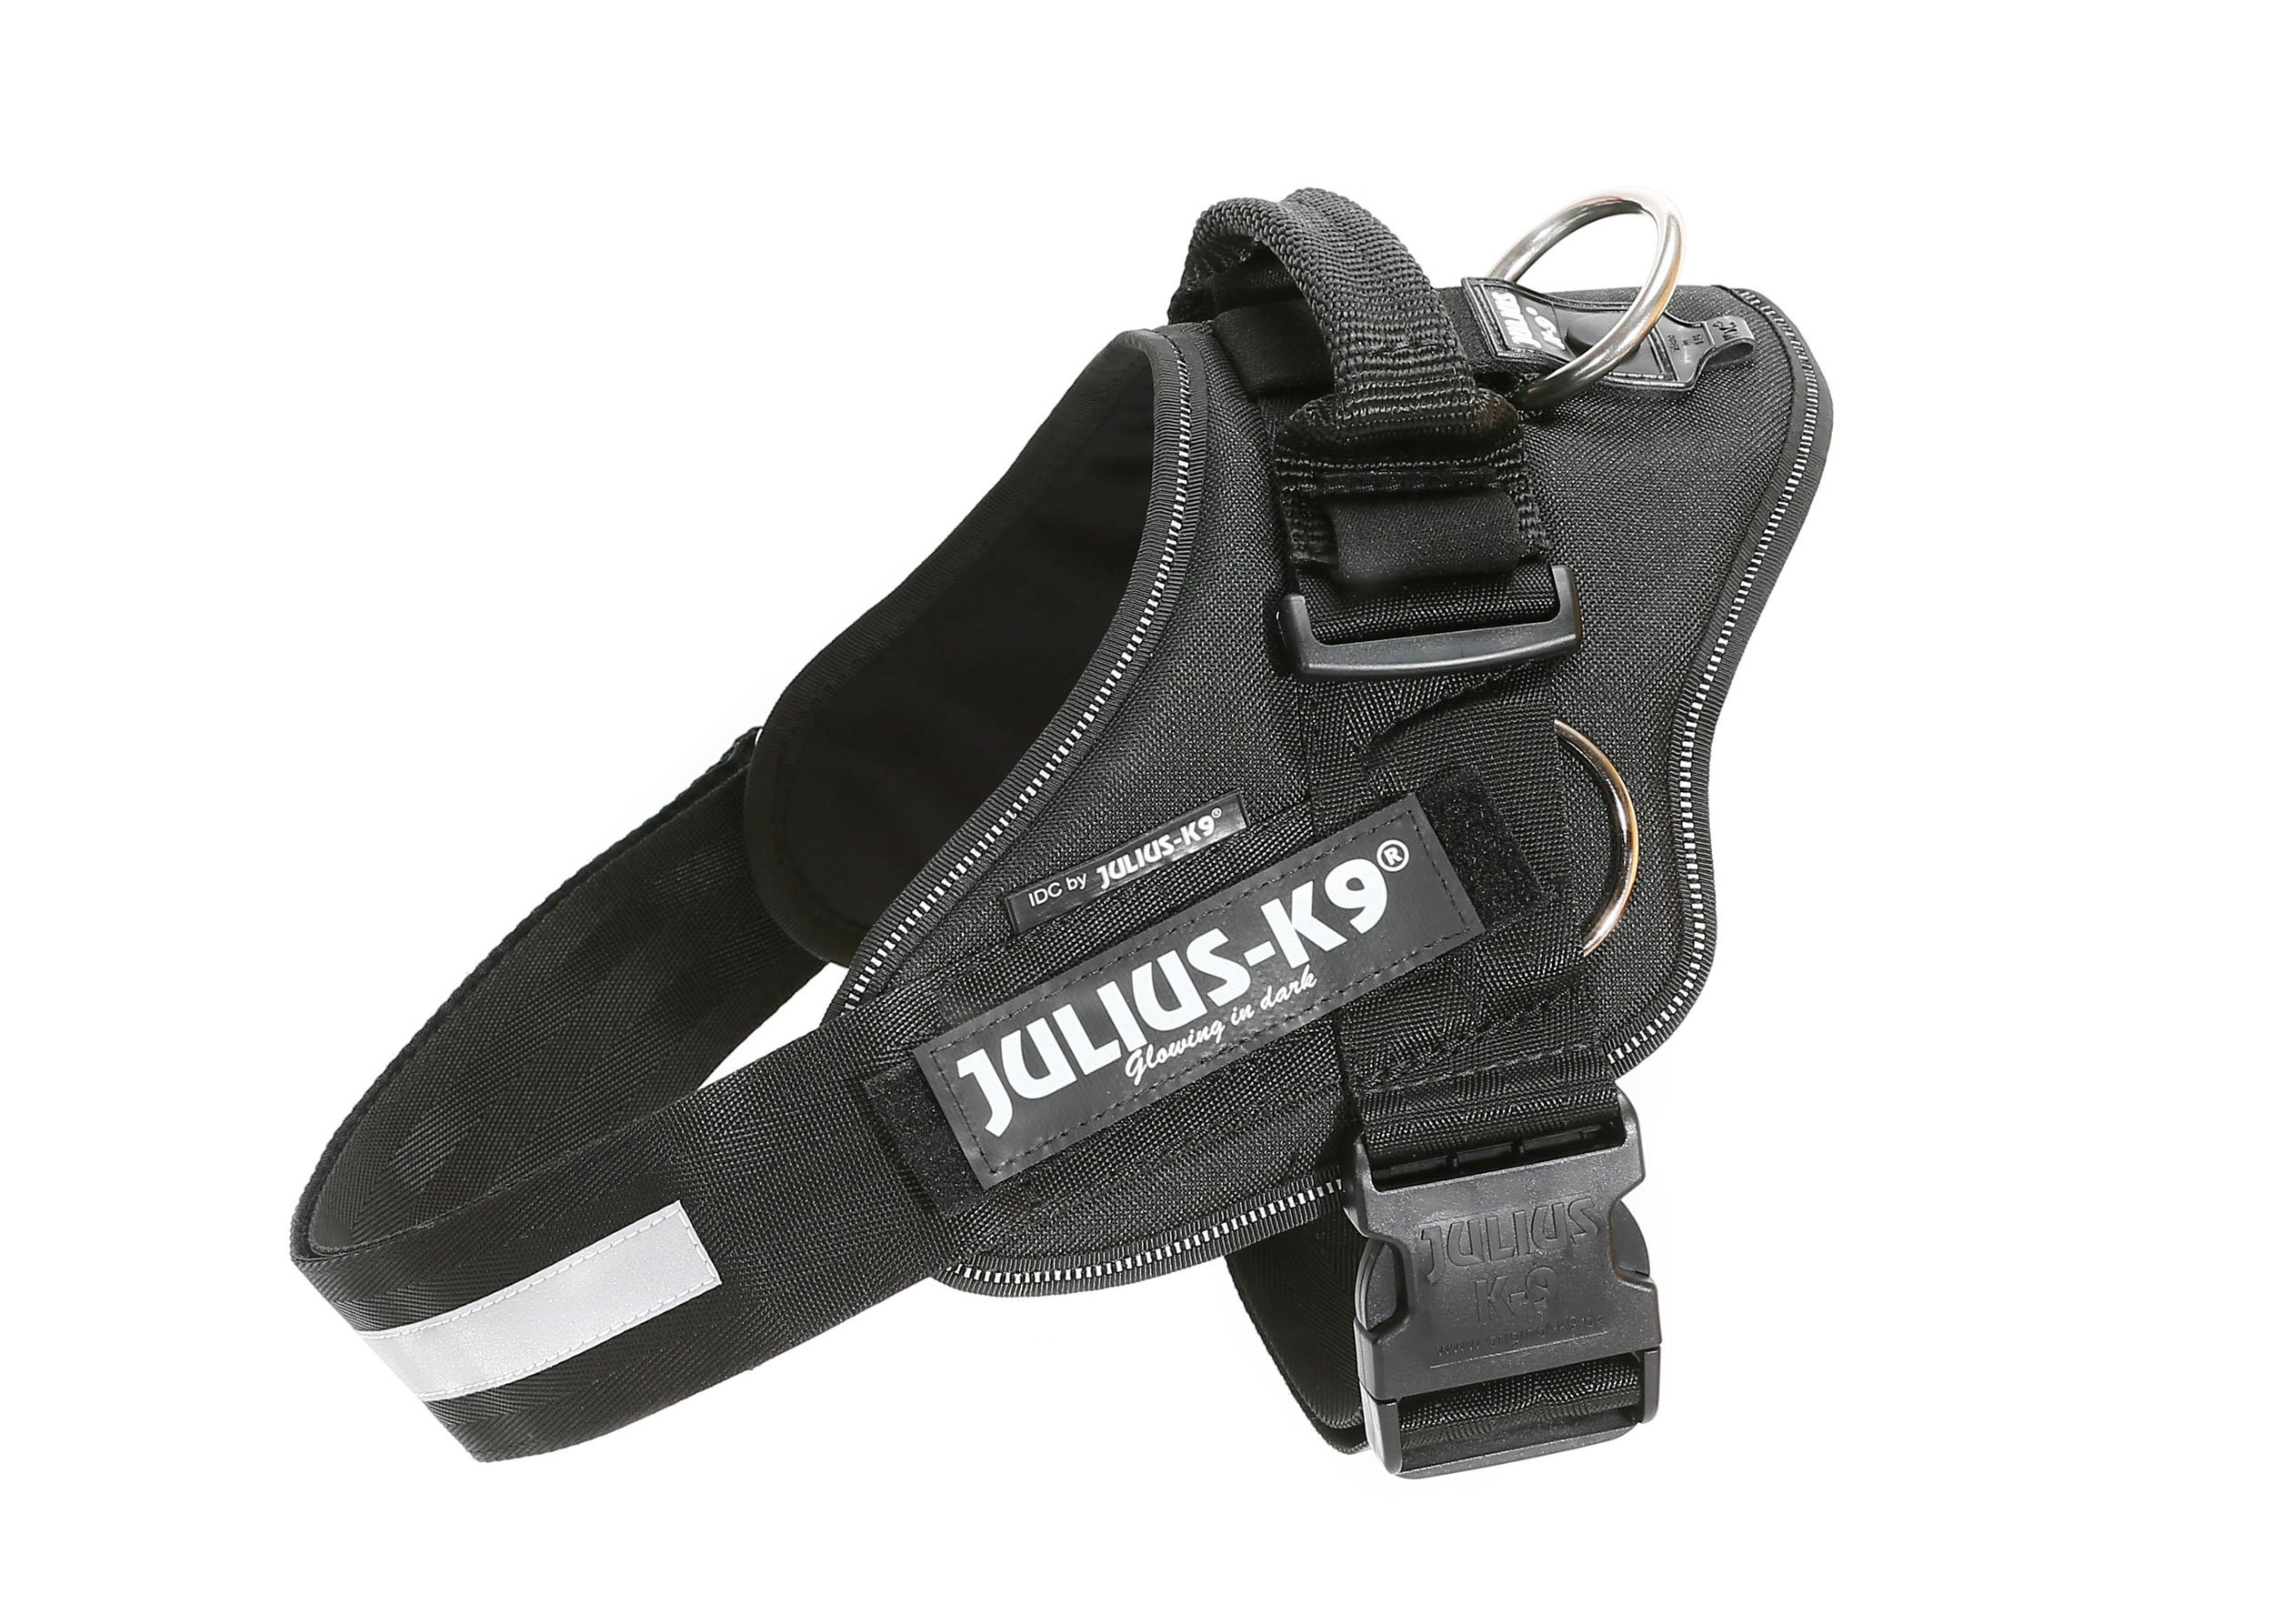 Julius-K9 16223-IDC P IDC PowerHarness with Side Rings for Dogs, Size 3, Black